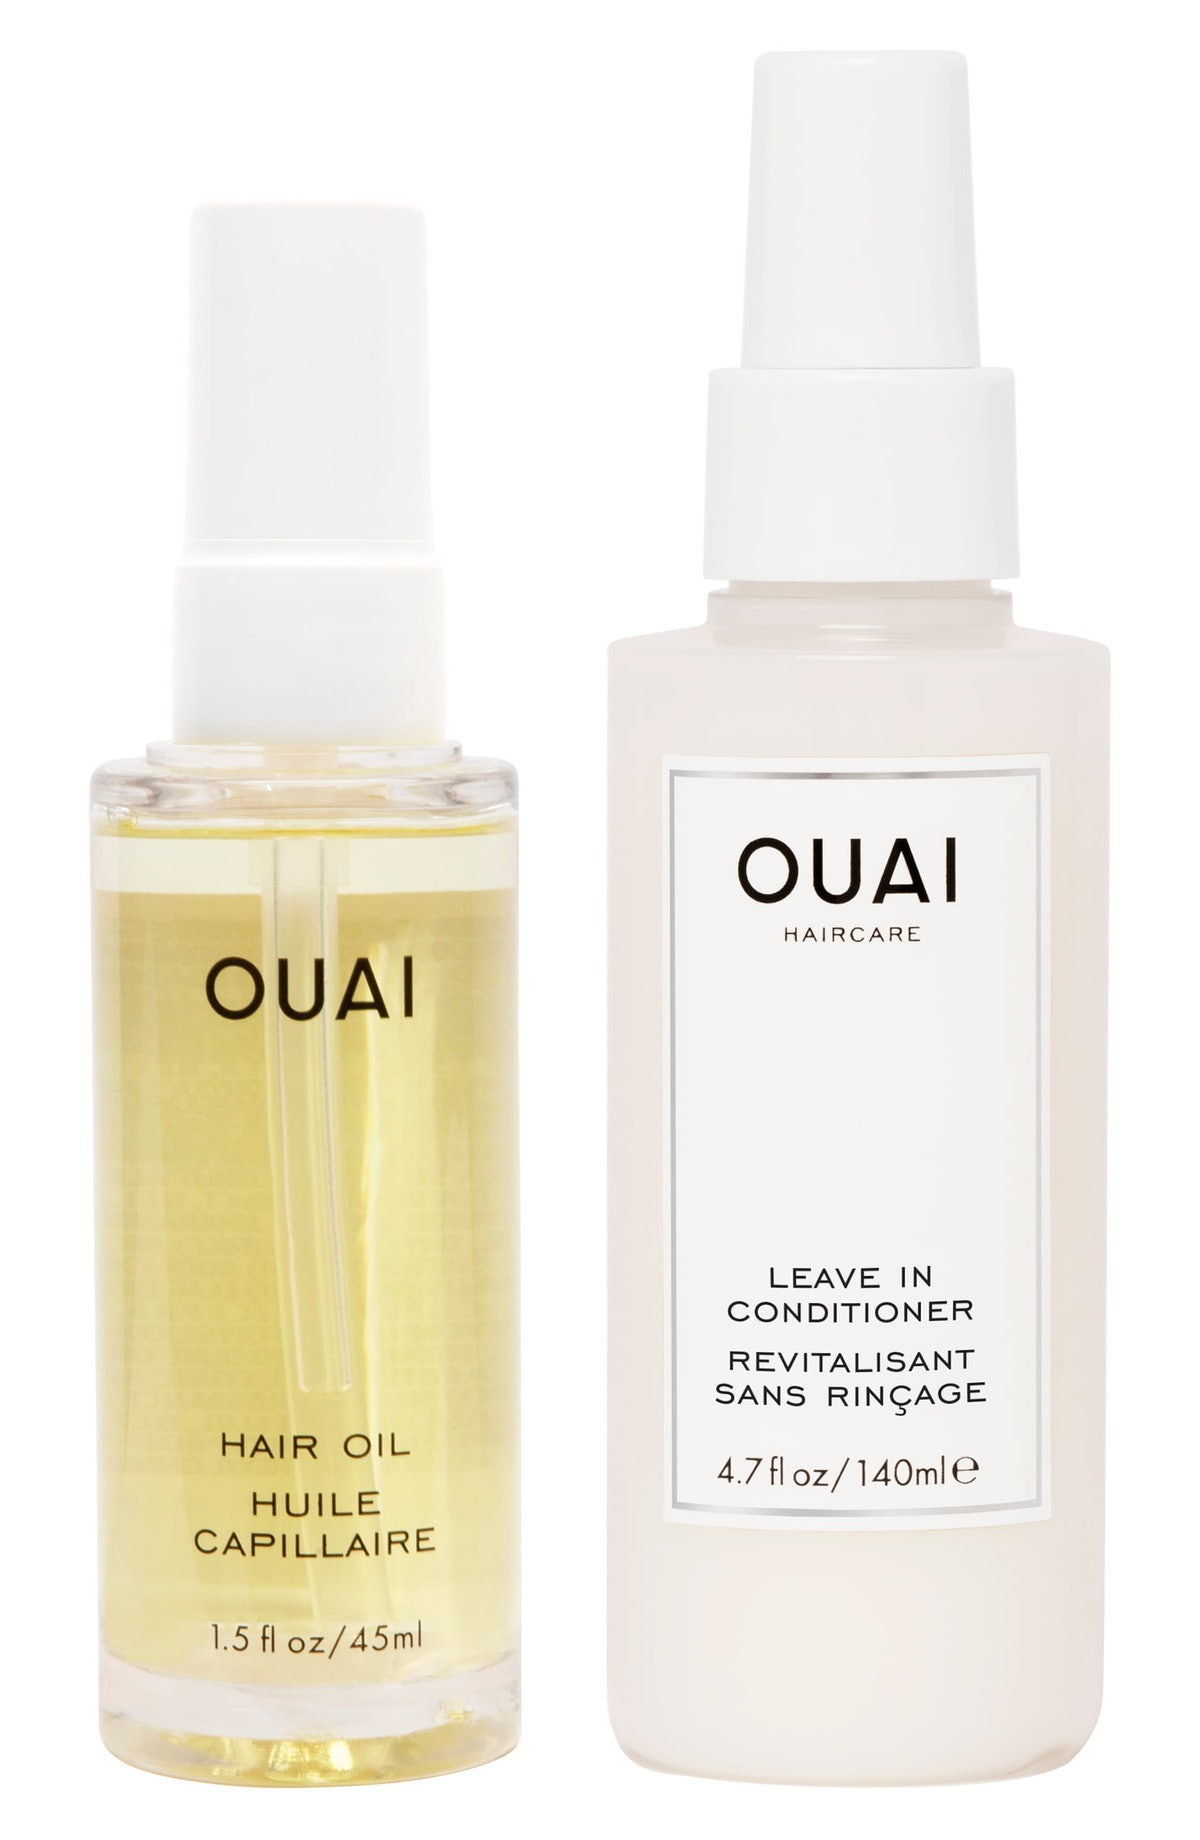 OUAI Thirsty Hair Oil & Leave-In Conditioner Kit